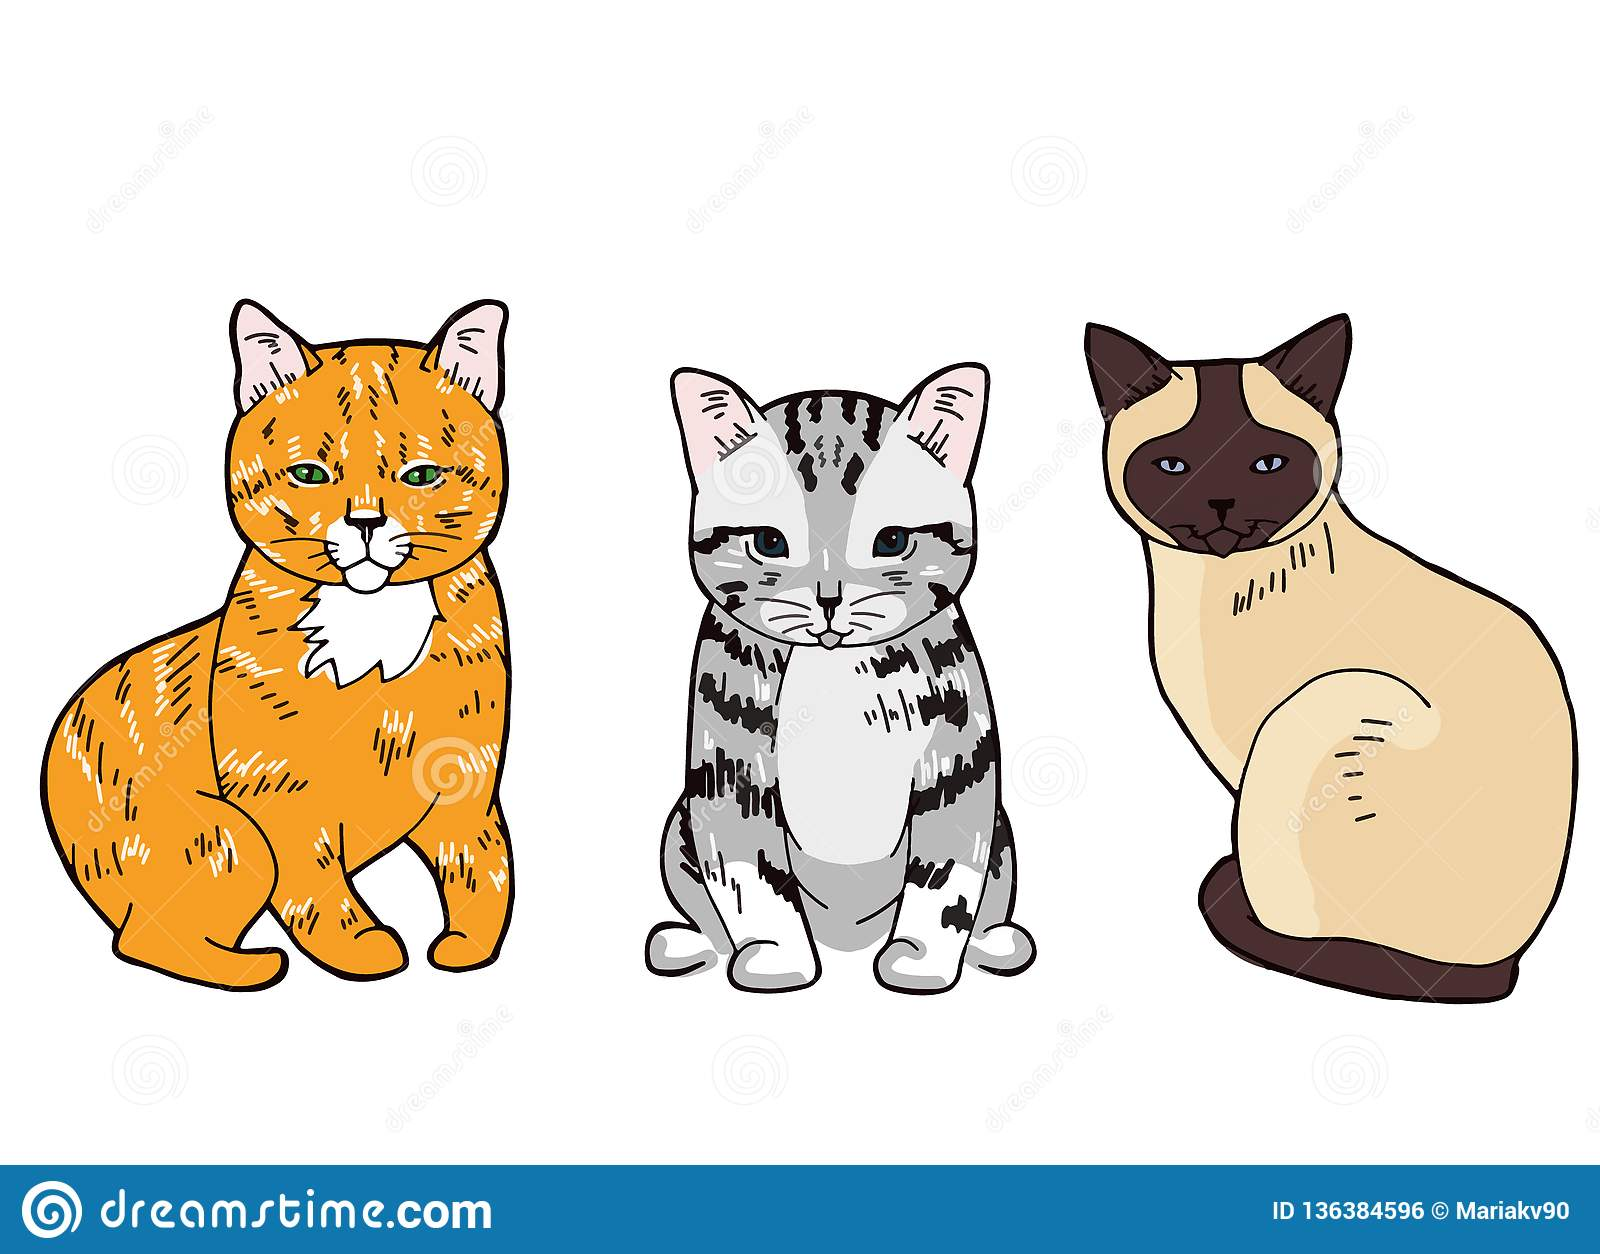 Illustration of three colorful sitting cats on white background